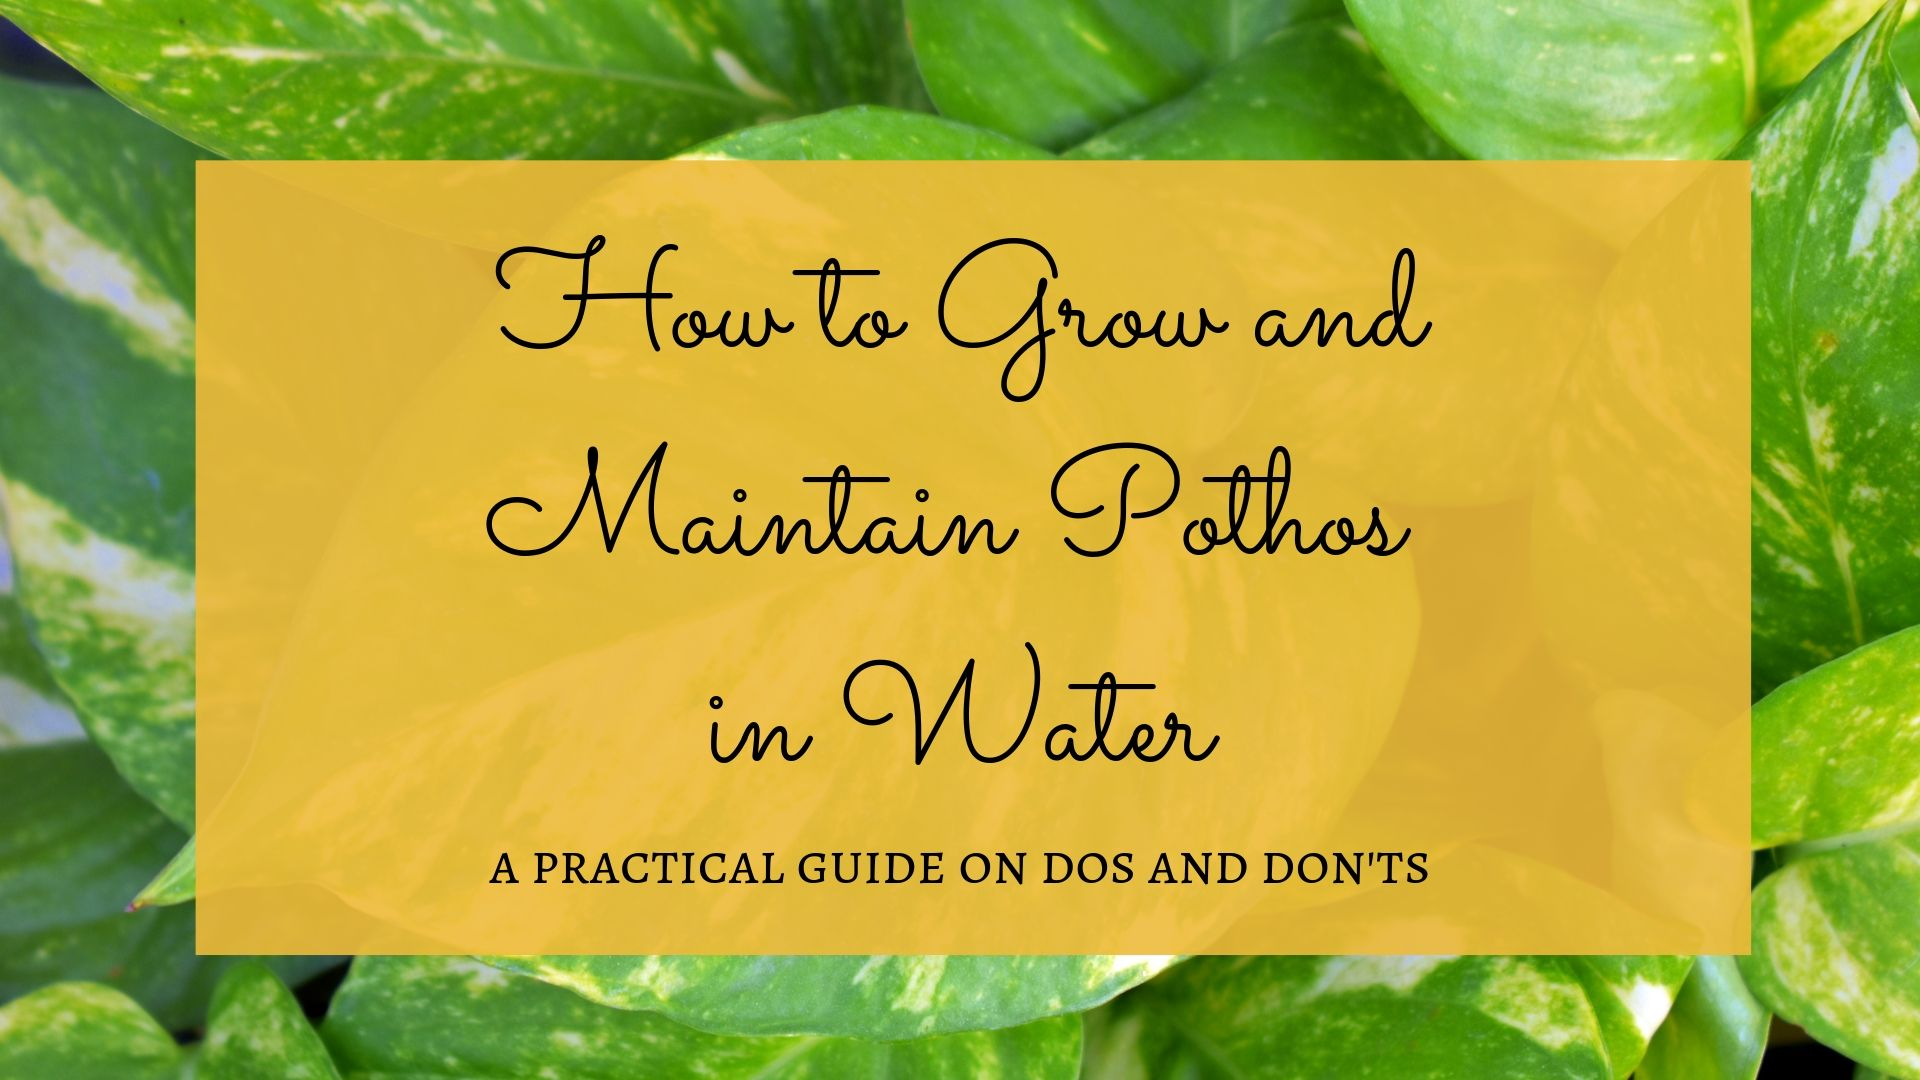 How to grow and Maintain Pothos in Water? A practical guide on Dos and Don'ts